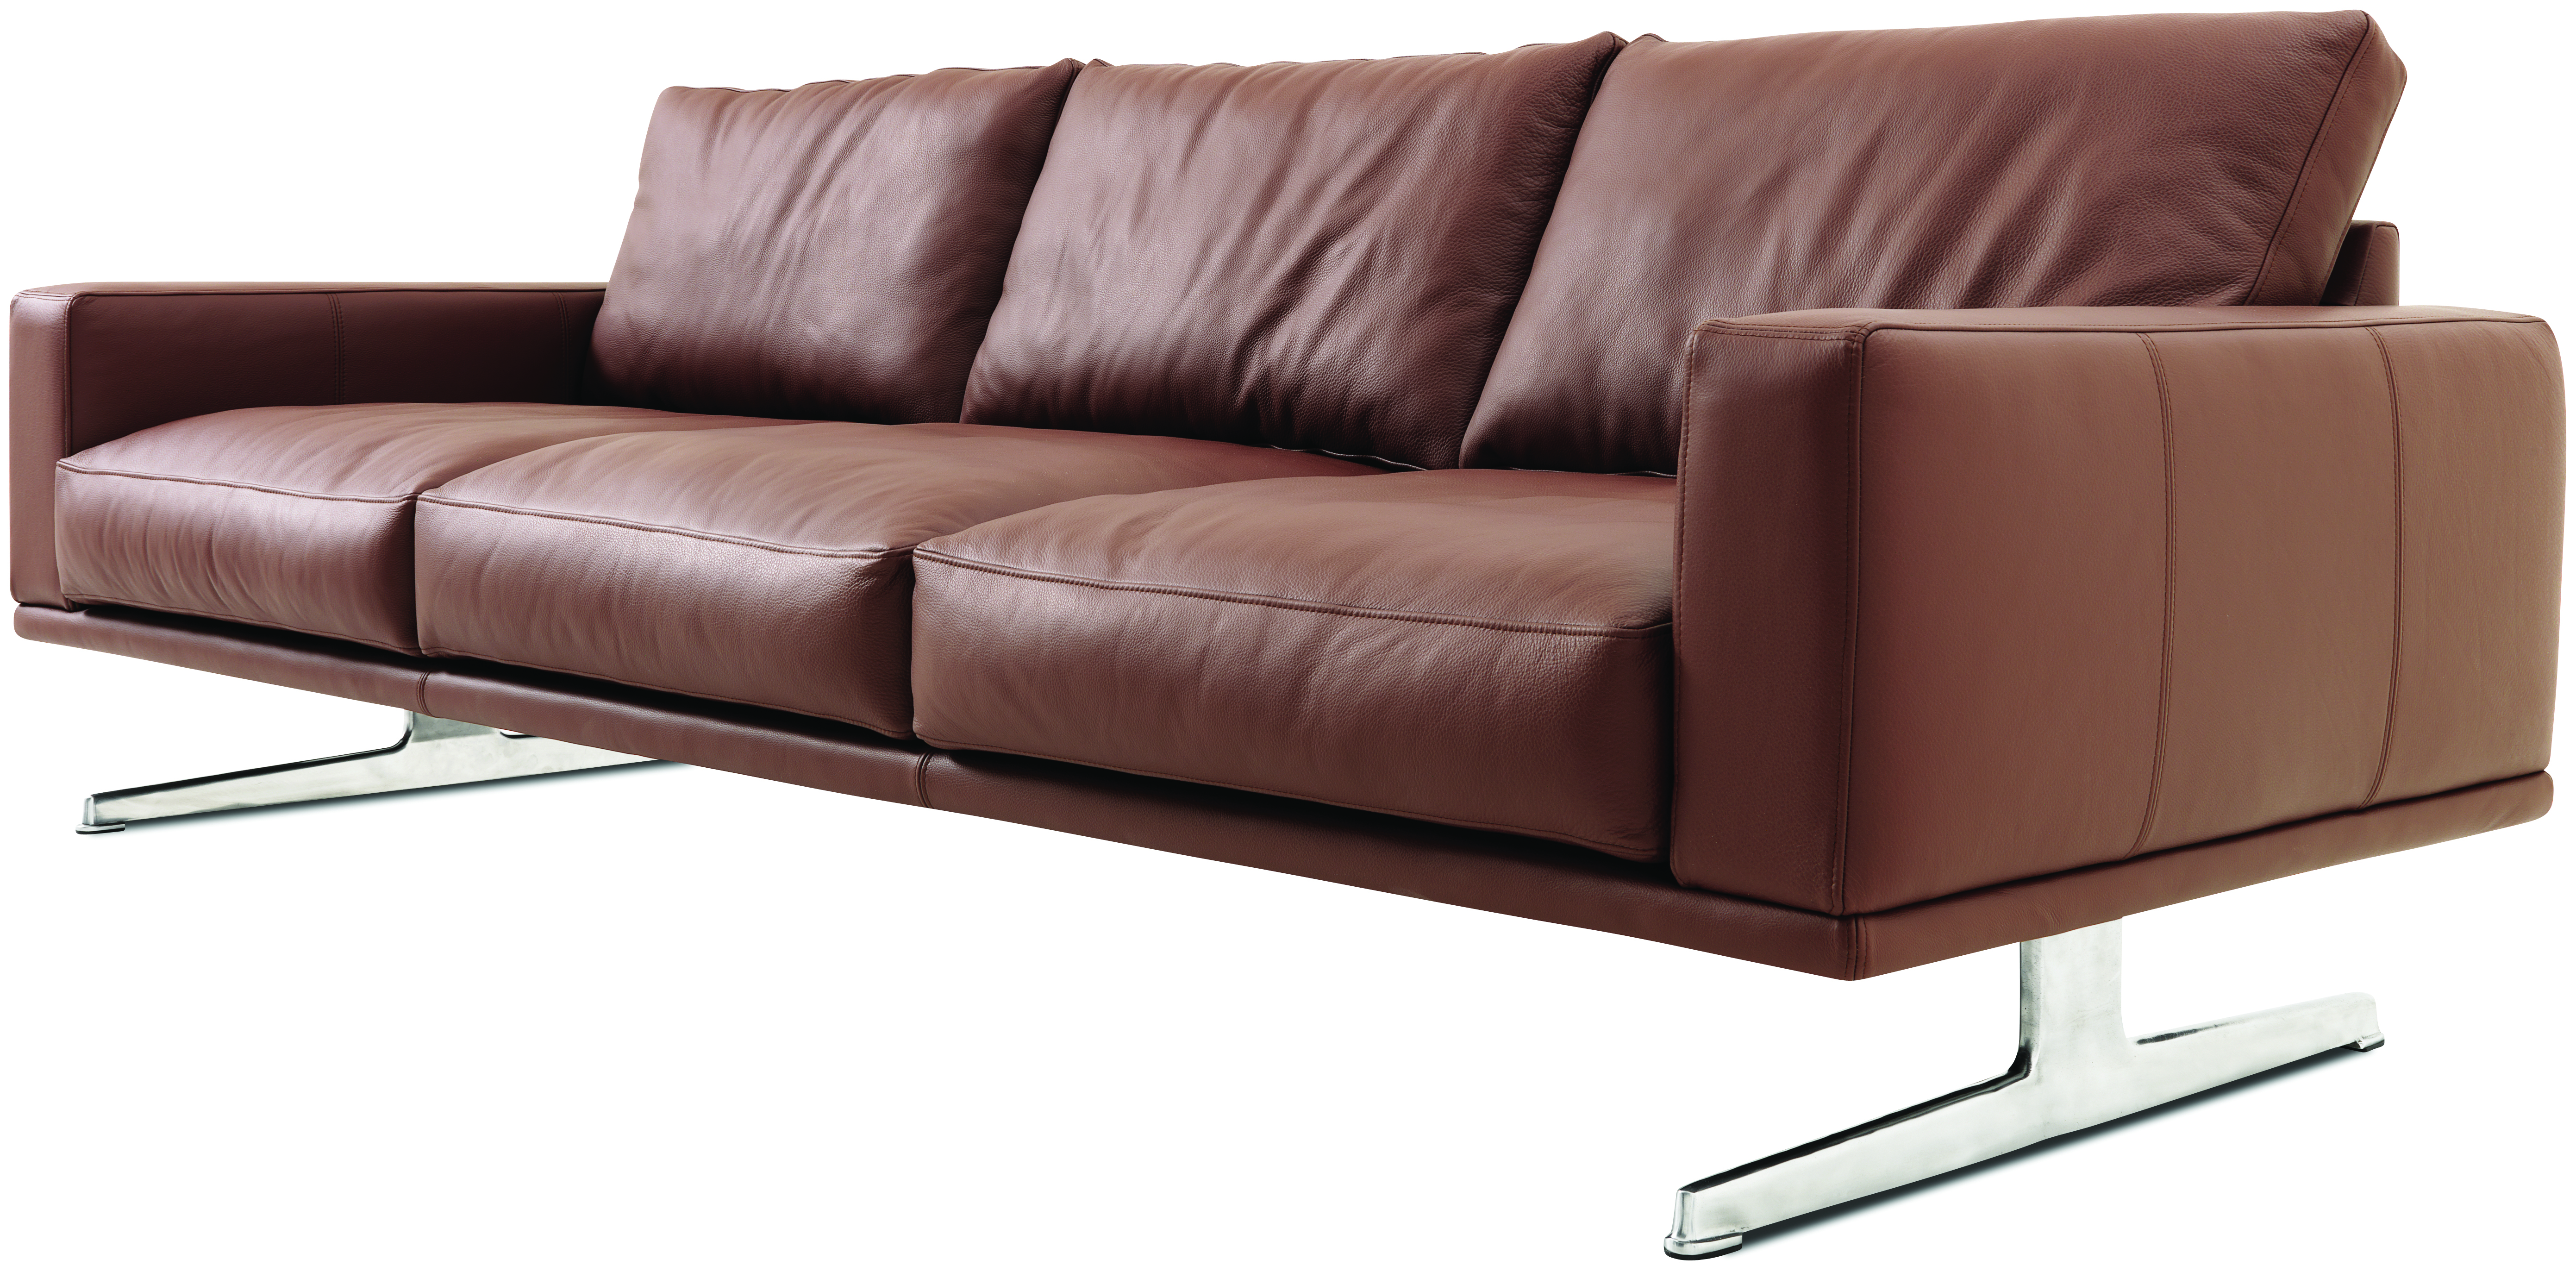 Boconcept Sofa Couch Boconcept Cambridge